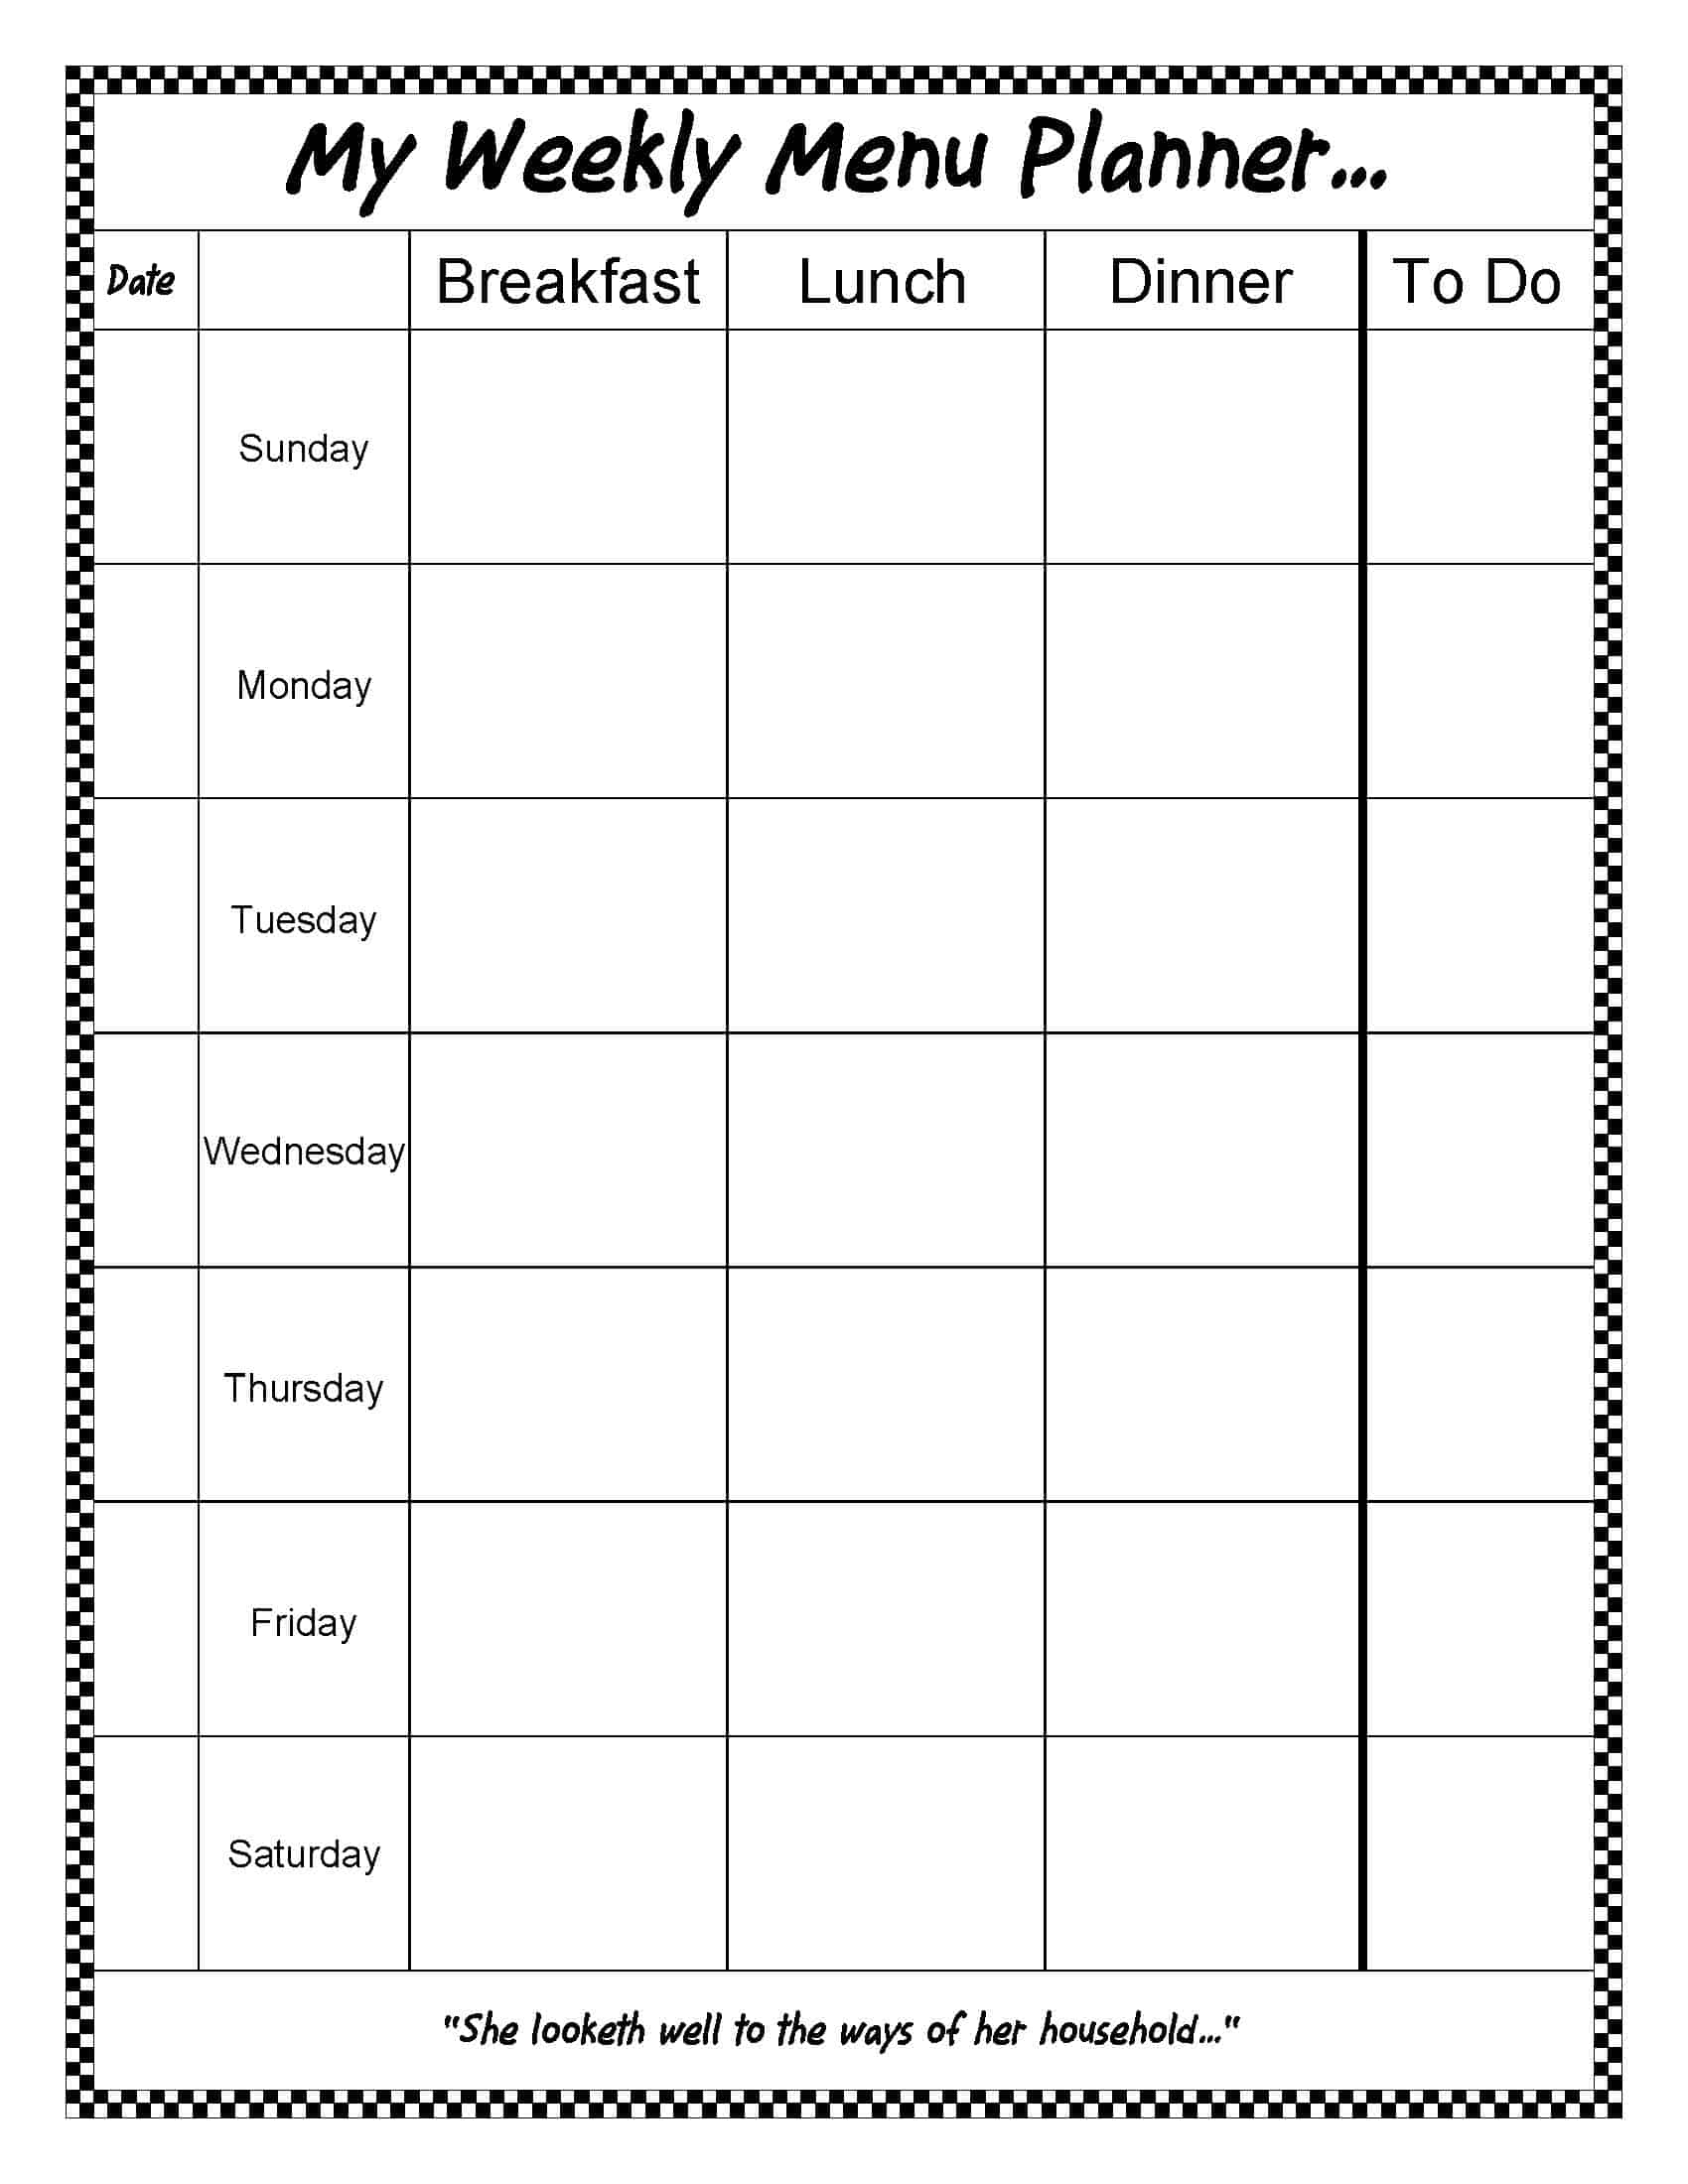 A gift for you an editable weekly menu planner sheri for To do planner online